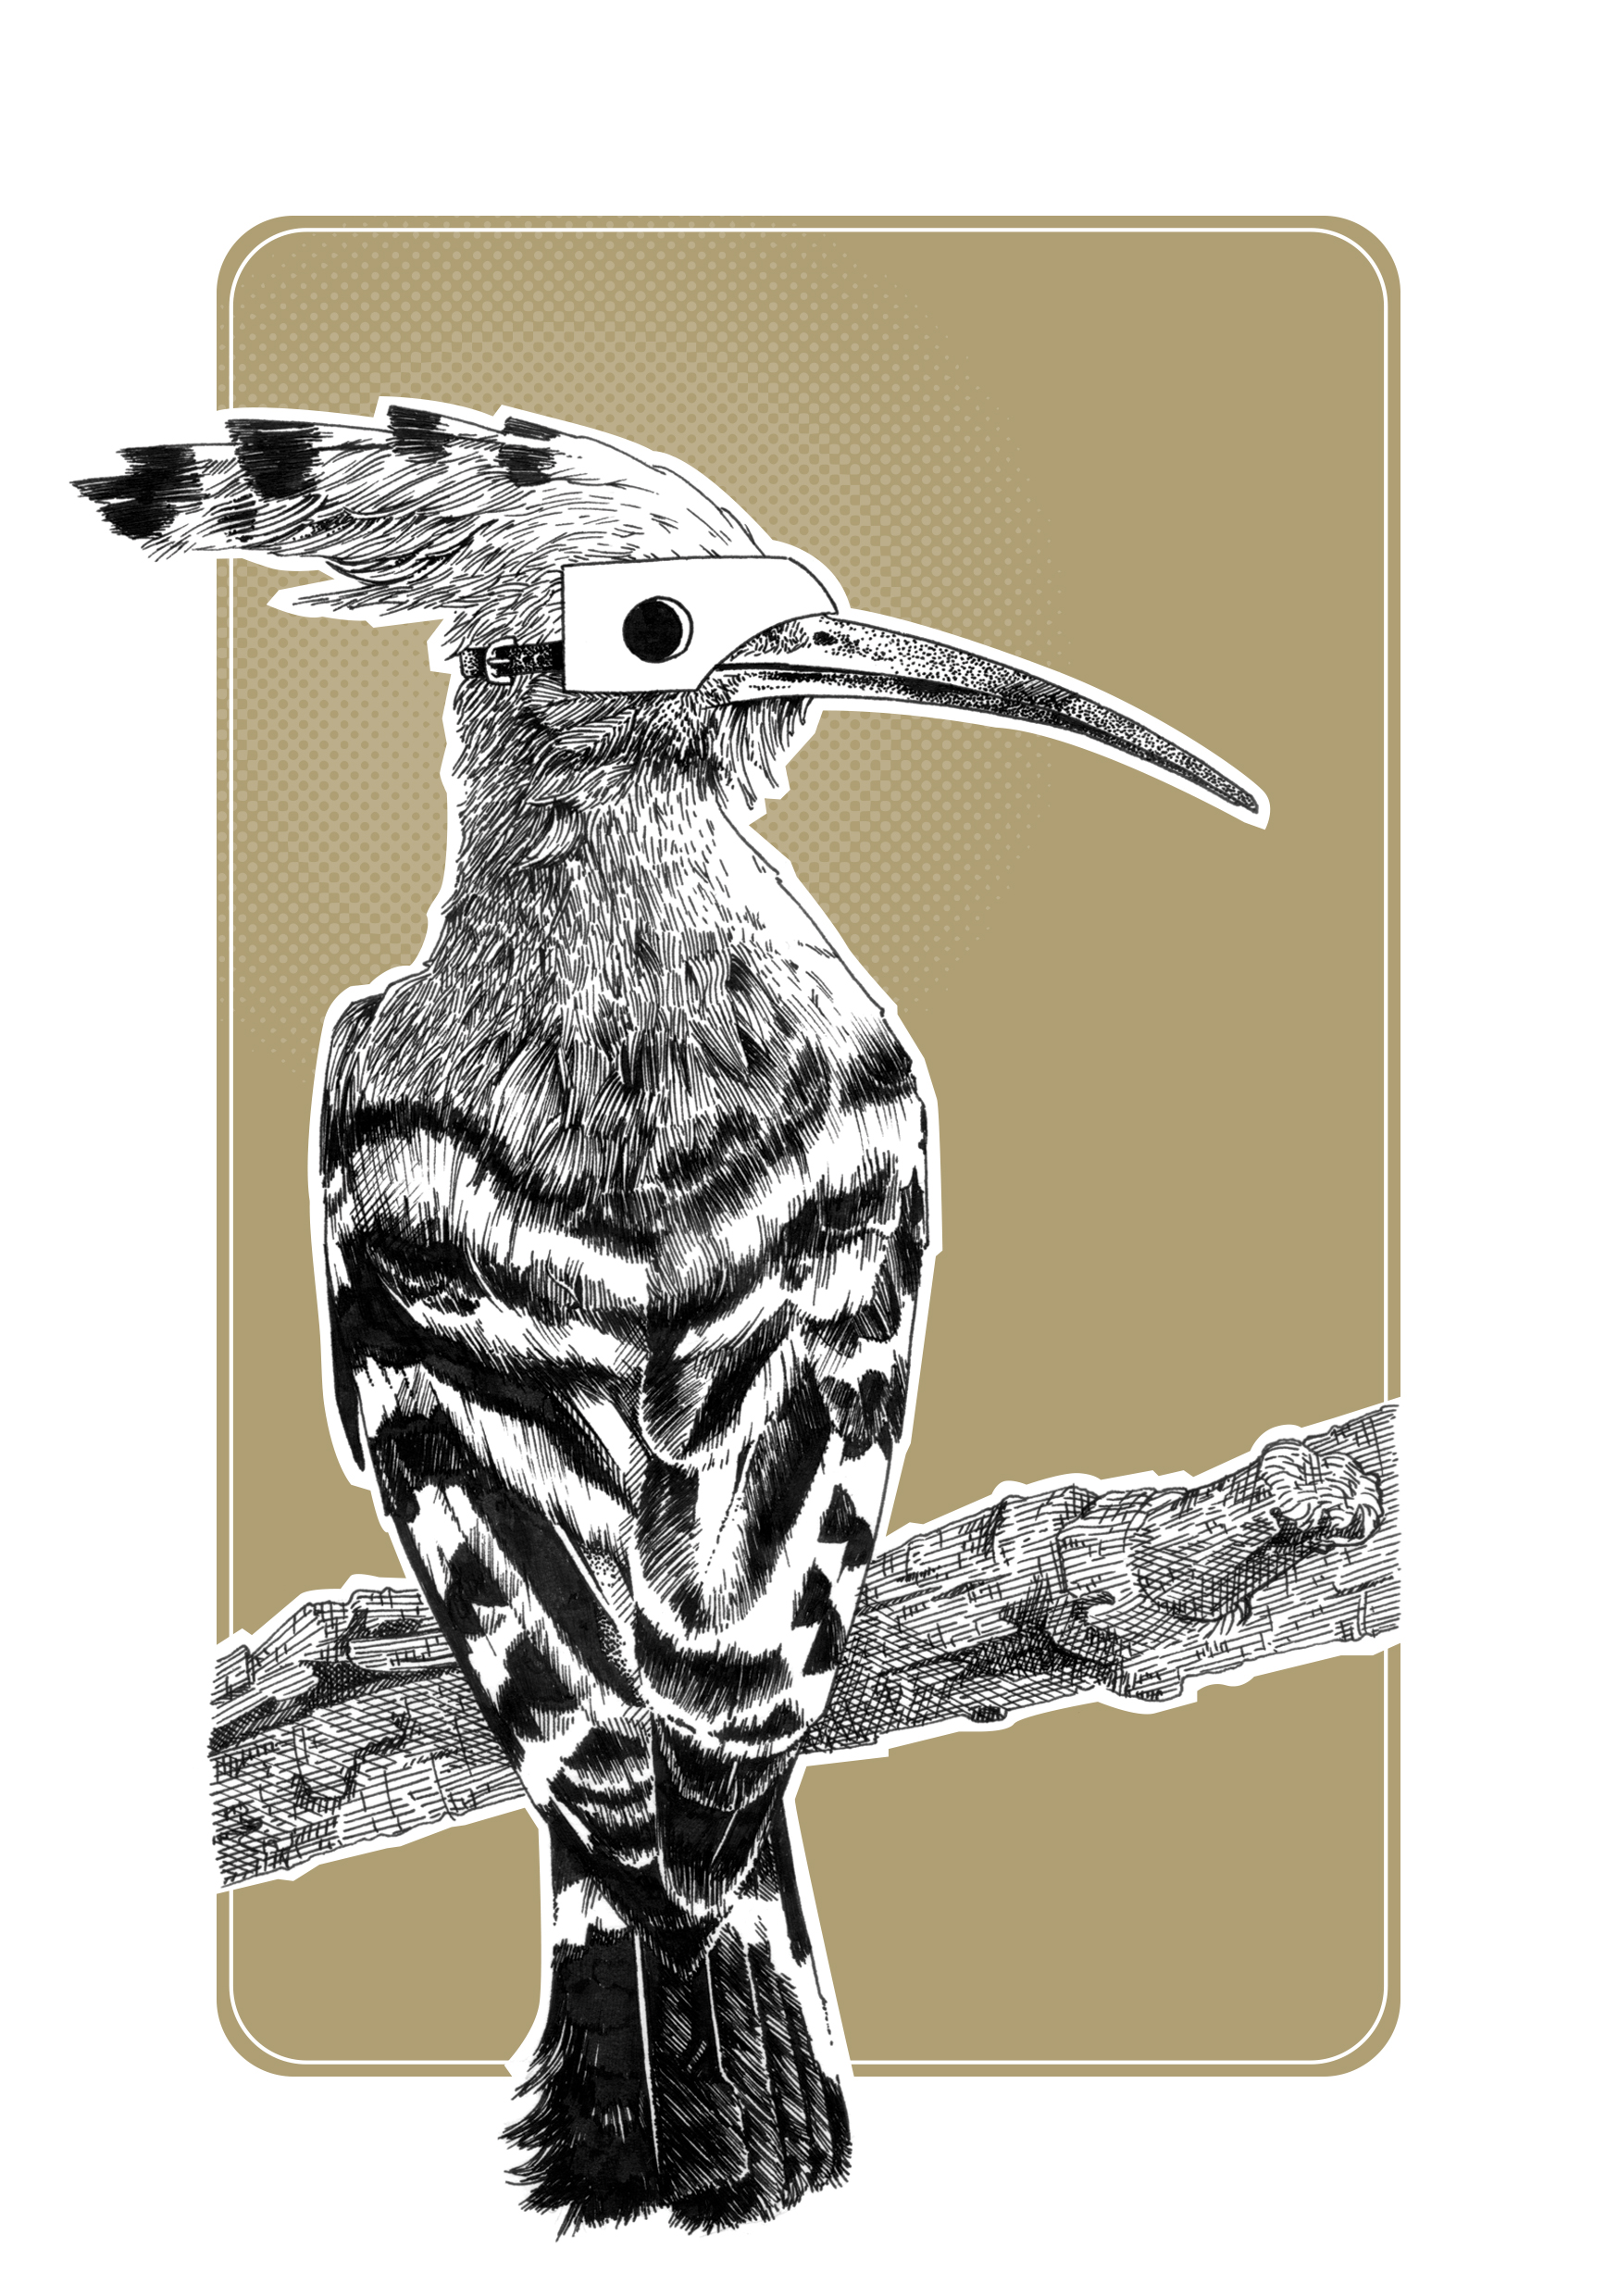 Hoopoe Final XL.jpg